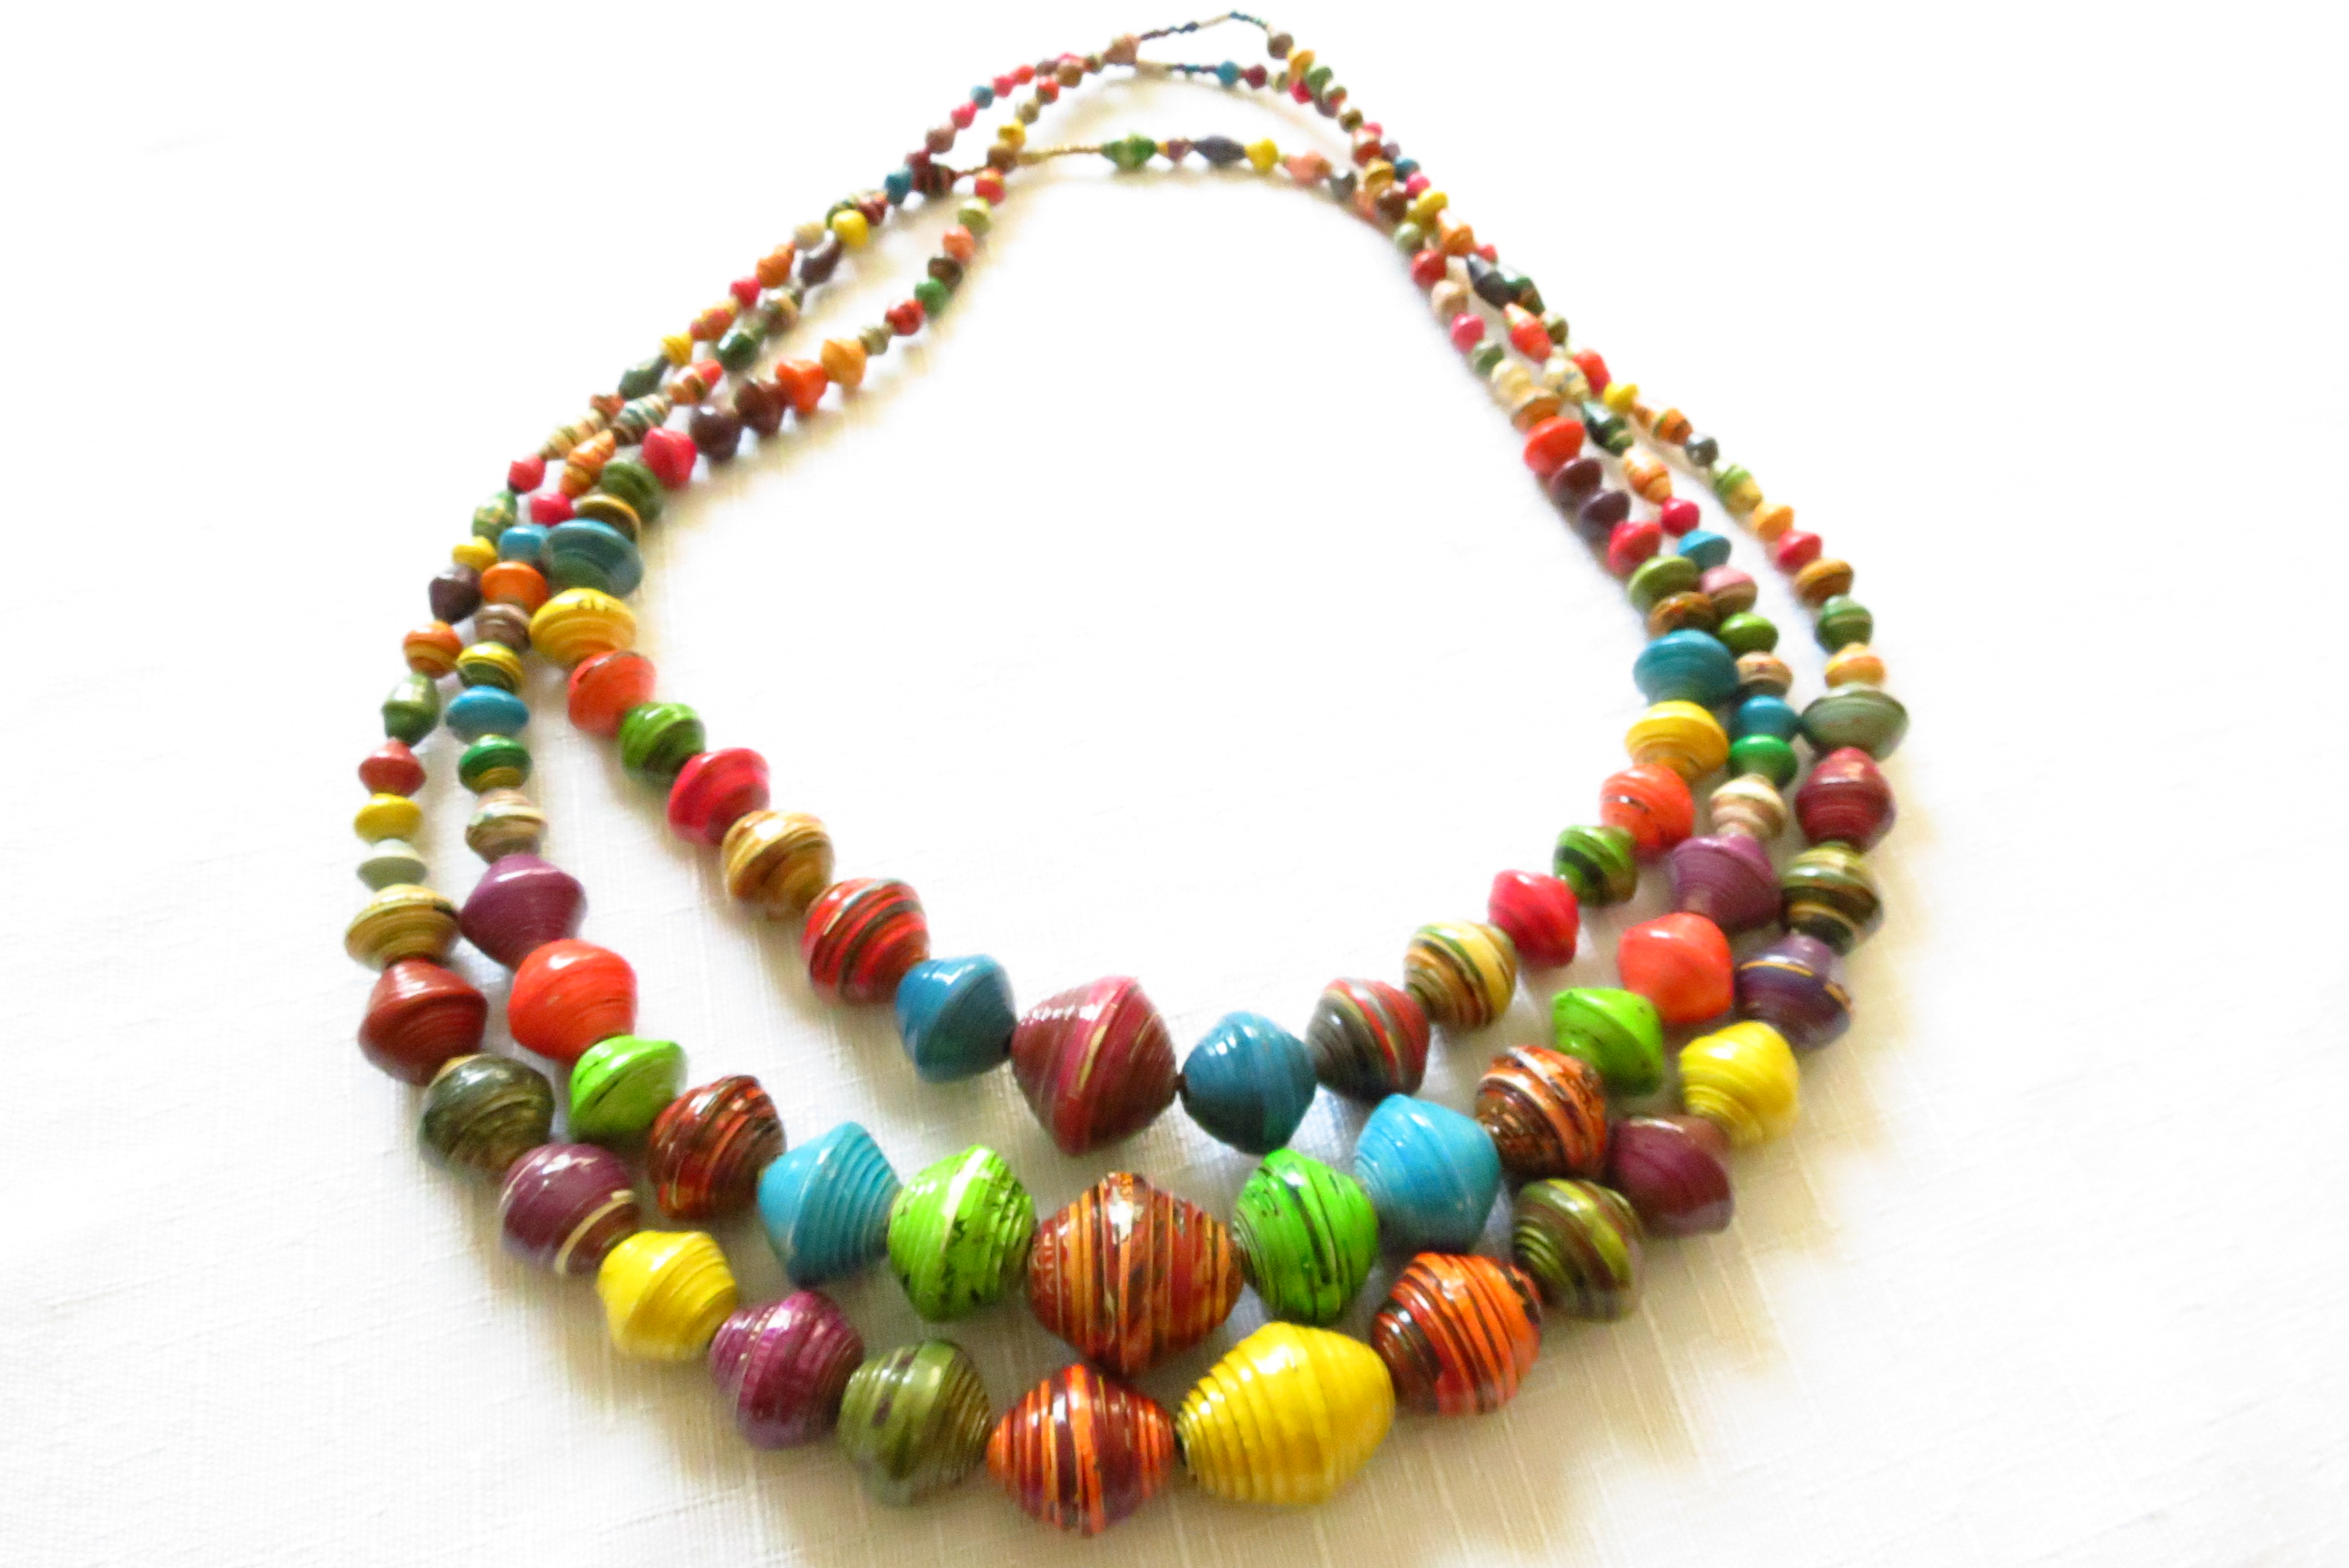 Kagwala necklace project lydia fair trade jewelry for How to make african jewelry crafts